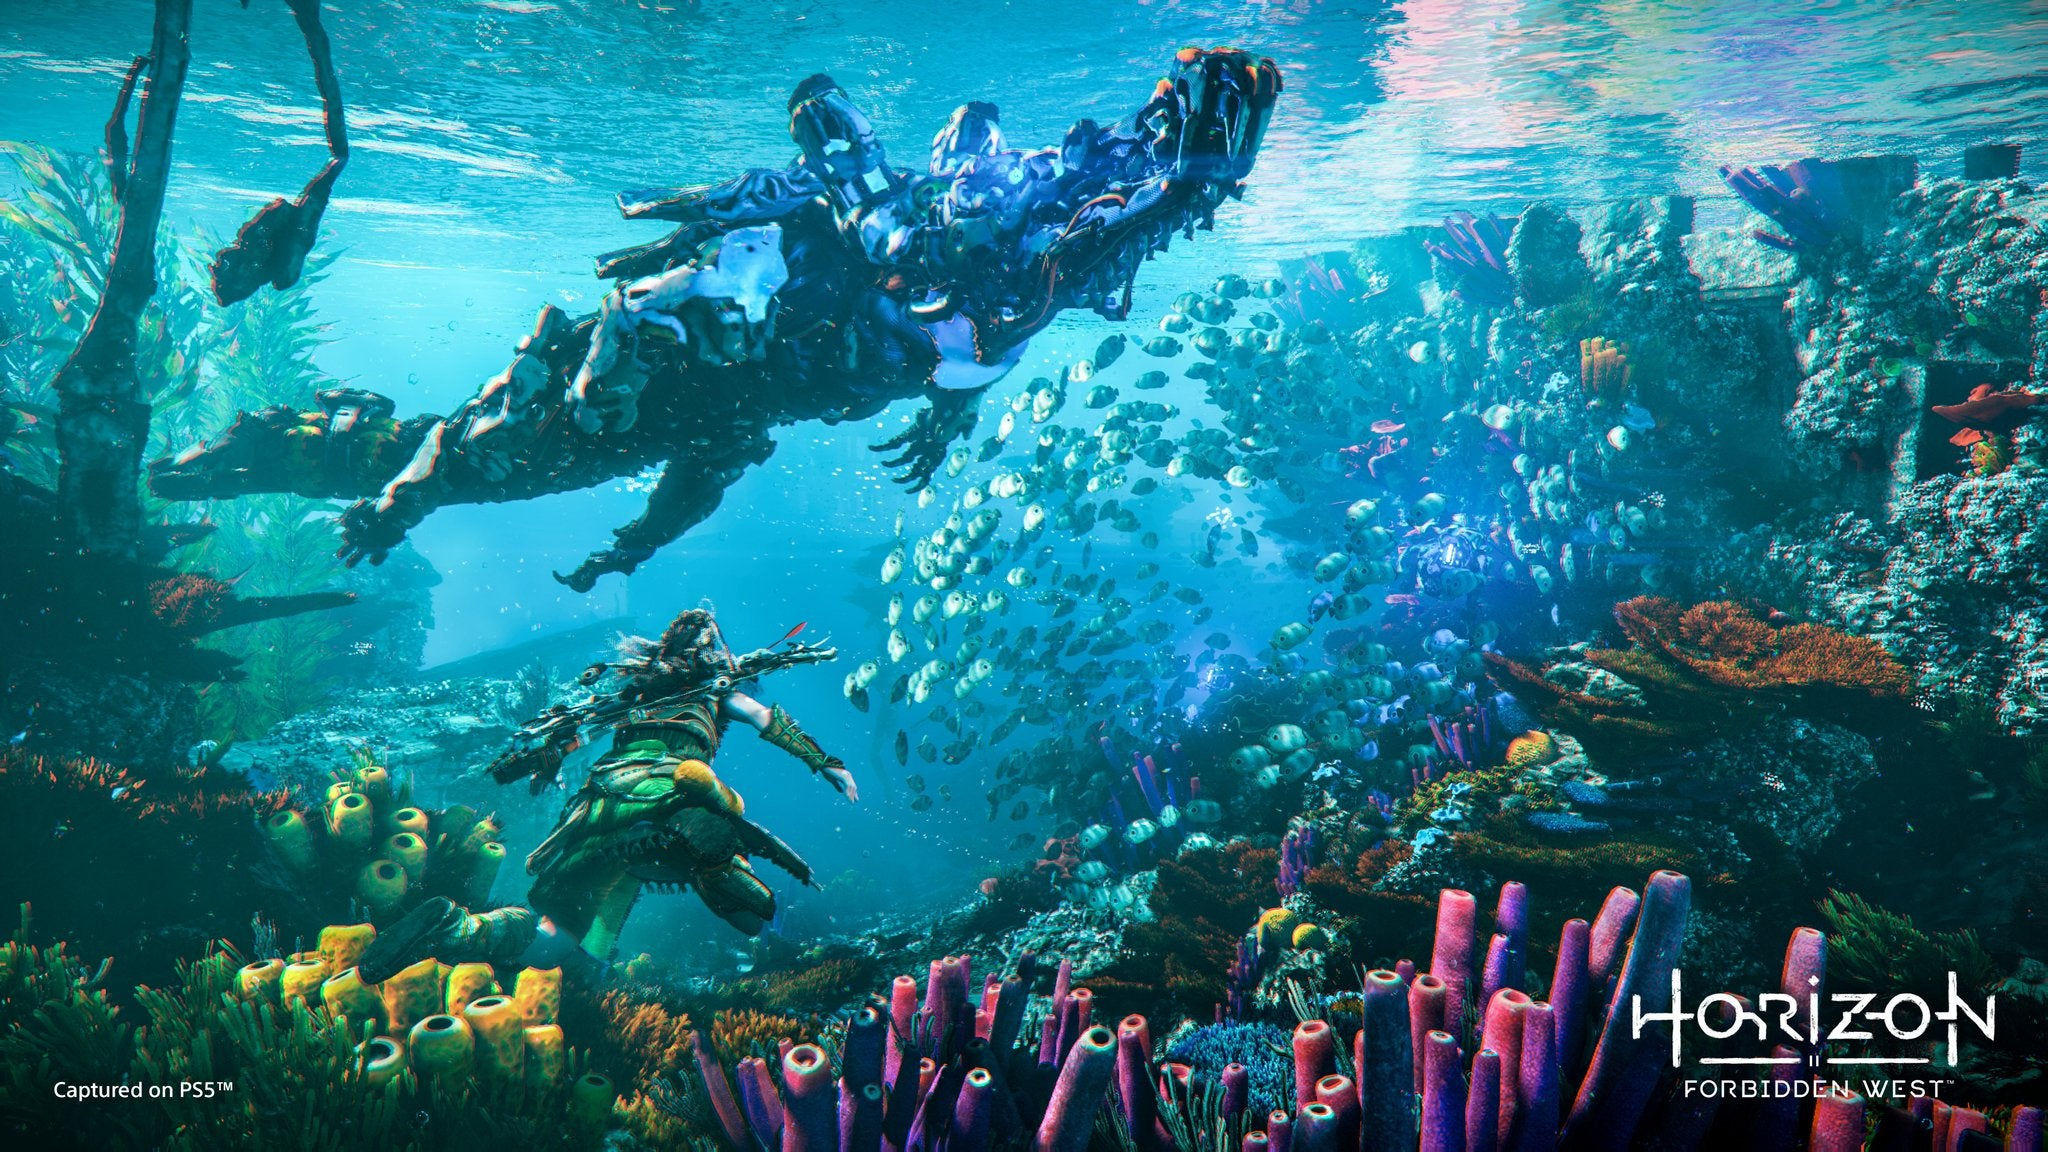 Screenshot From Horizon Forbidden West of Aloy swimming near coral reefs, a school of fish, and a mechanical alligator.